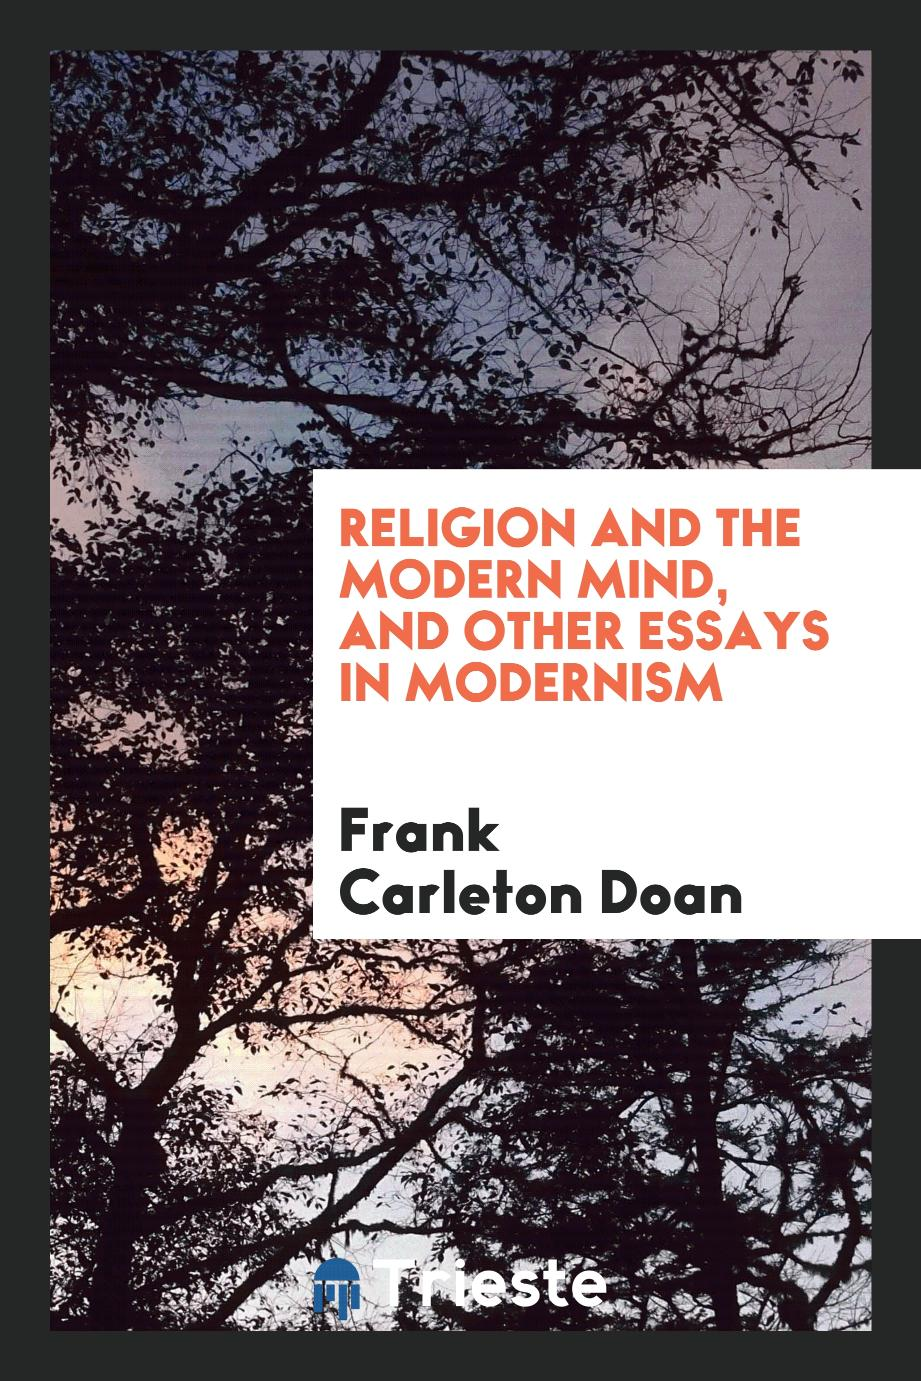 Religion and the modern mind, and other essays in modernism